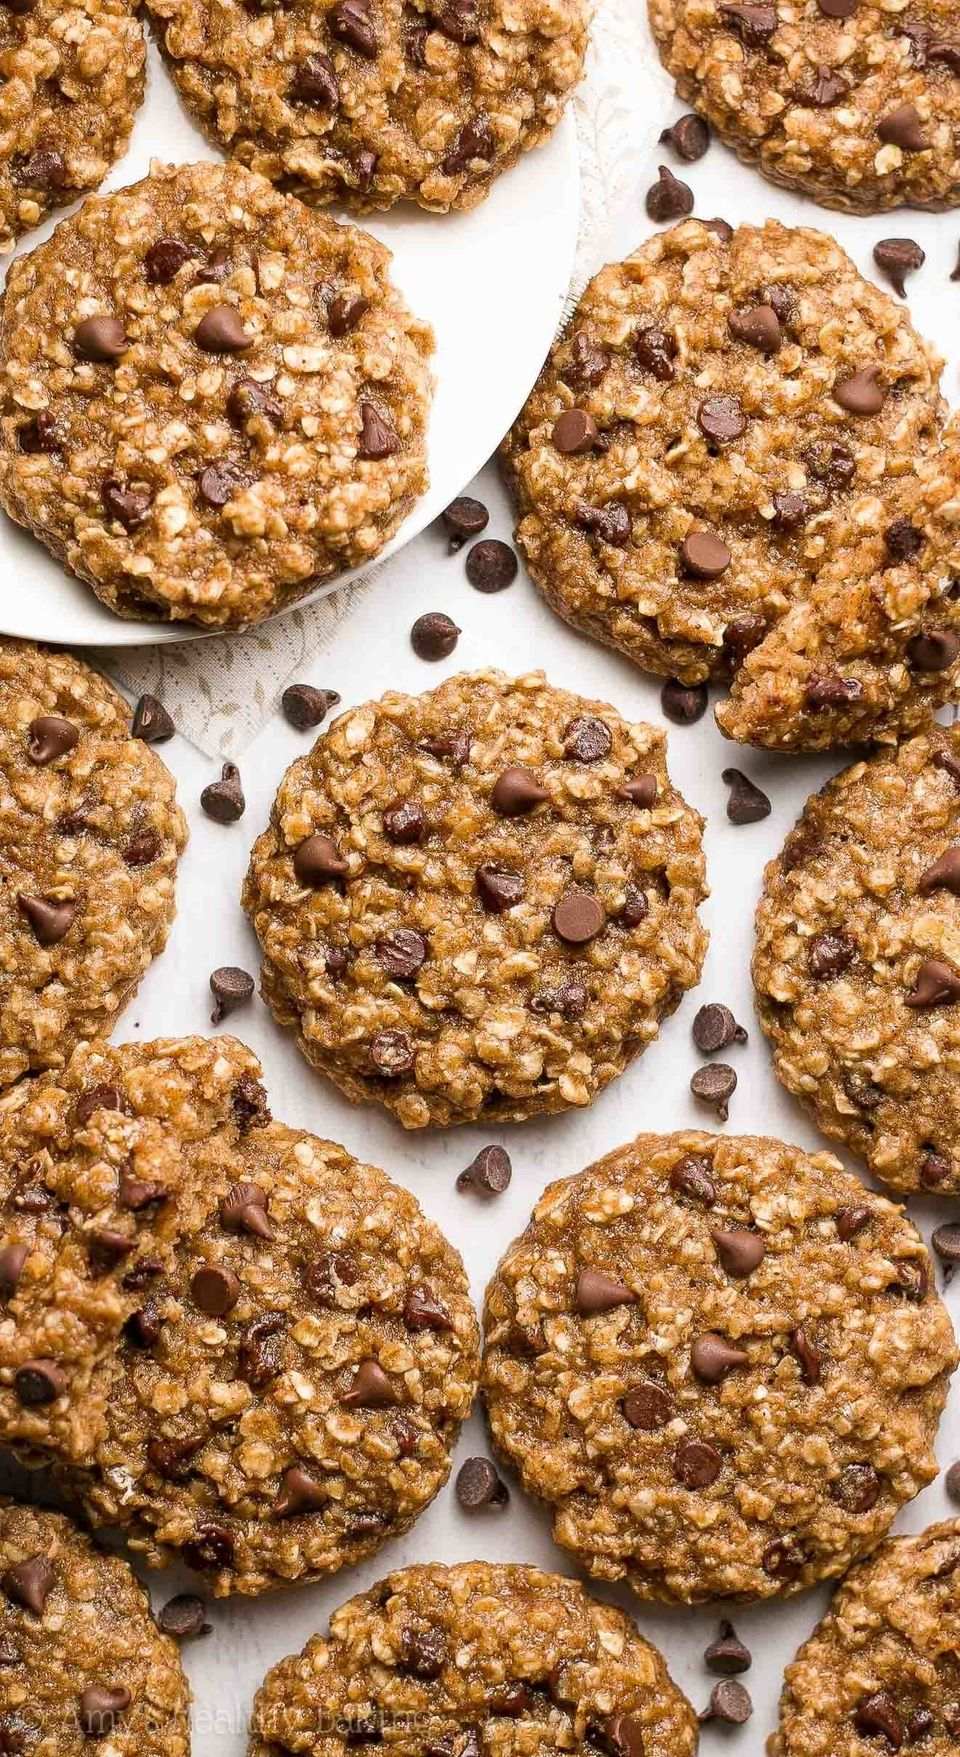 50 Of The Best Healthy Dessert Recipes Of All Time Huffpost Life